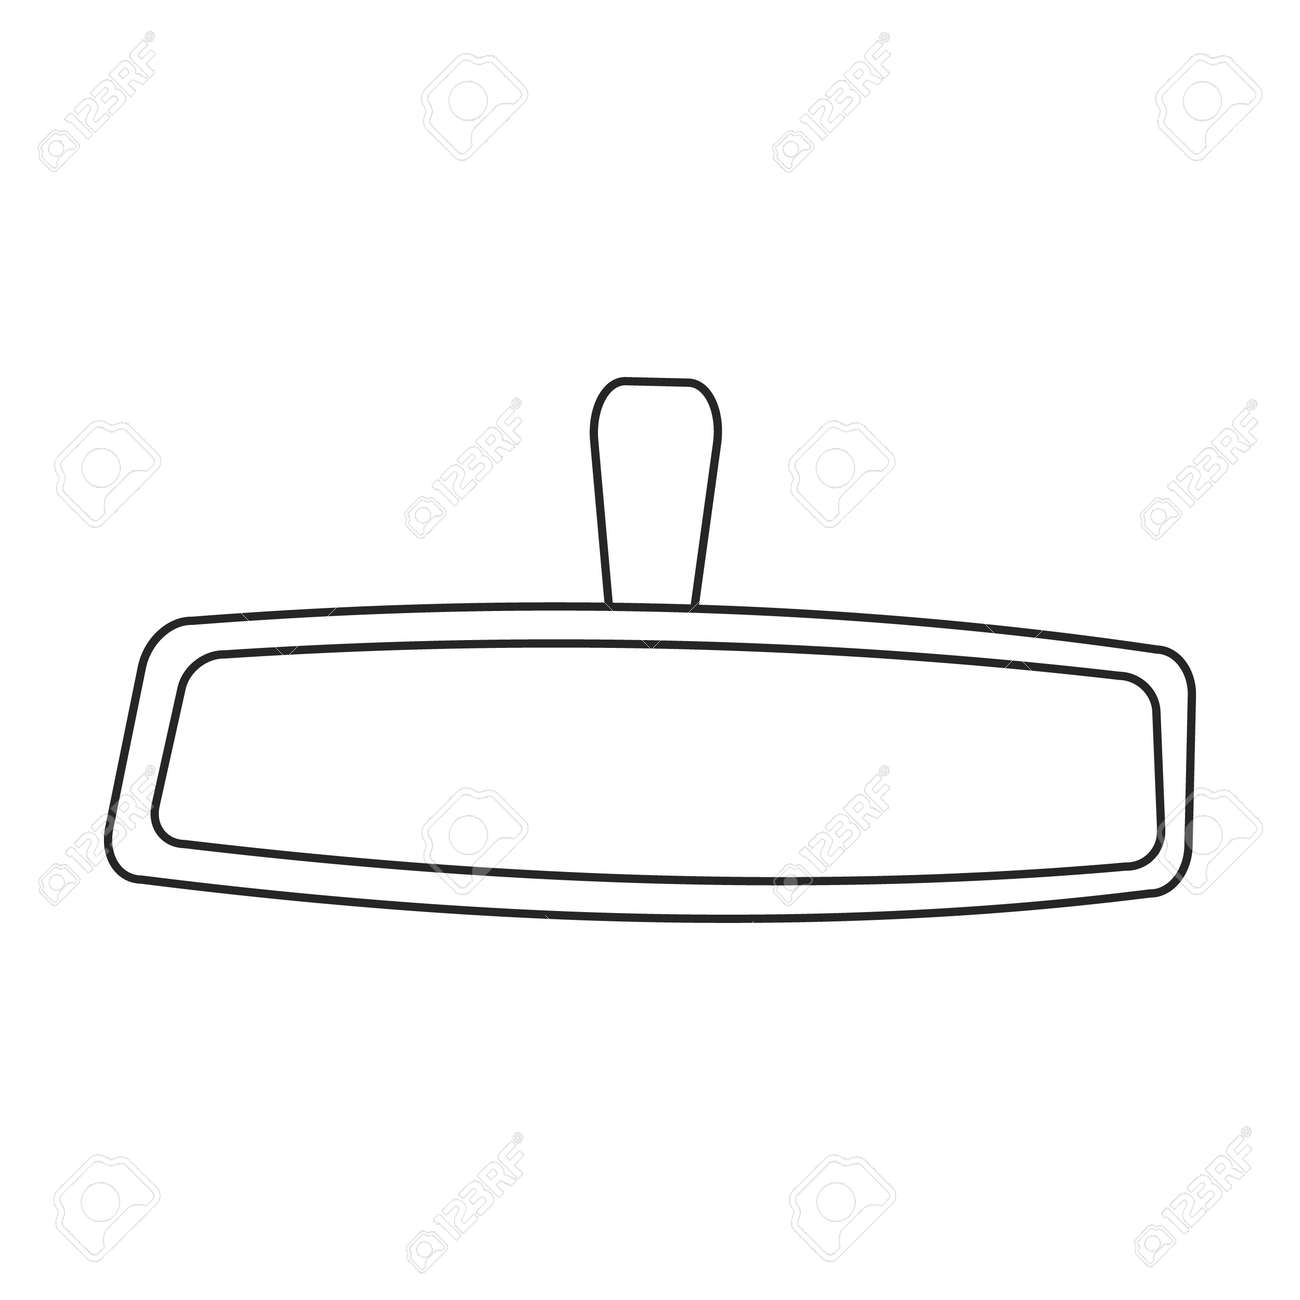 Mirror rear view car, vector outline icon. Vector illustration auto rearview on white background. Isolated outline illustration icon of mirror rear view. - 168841072